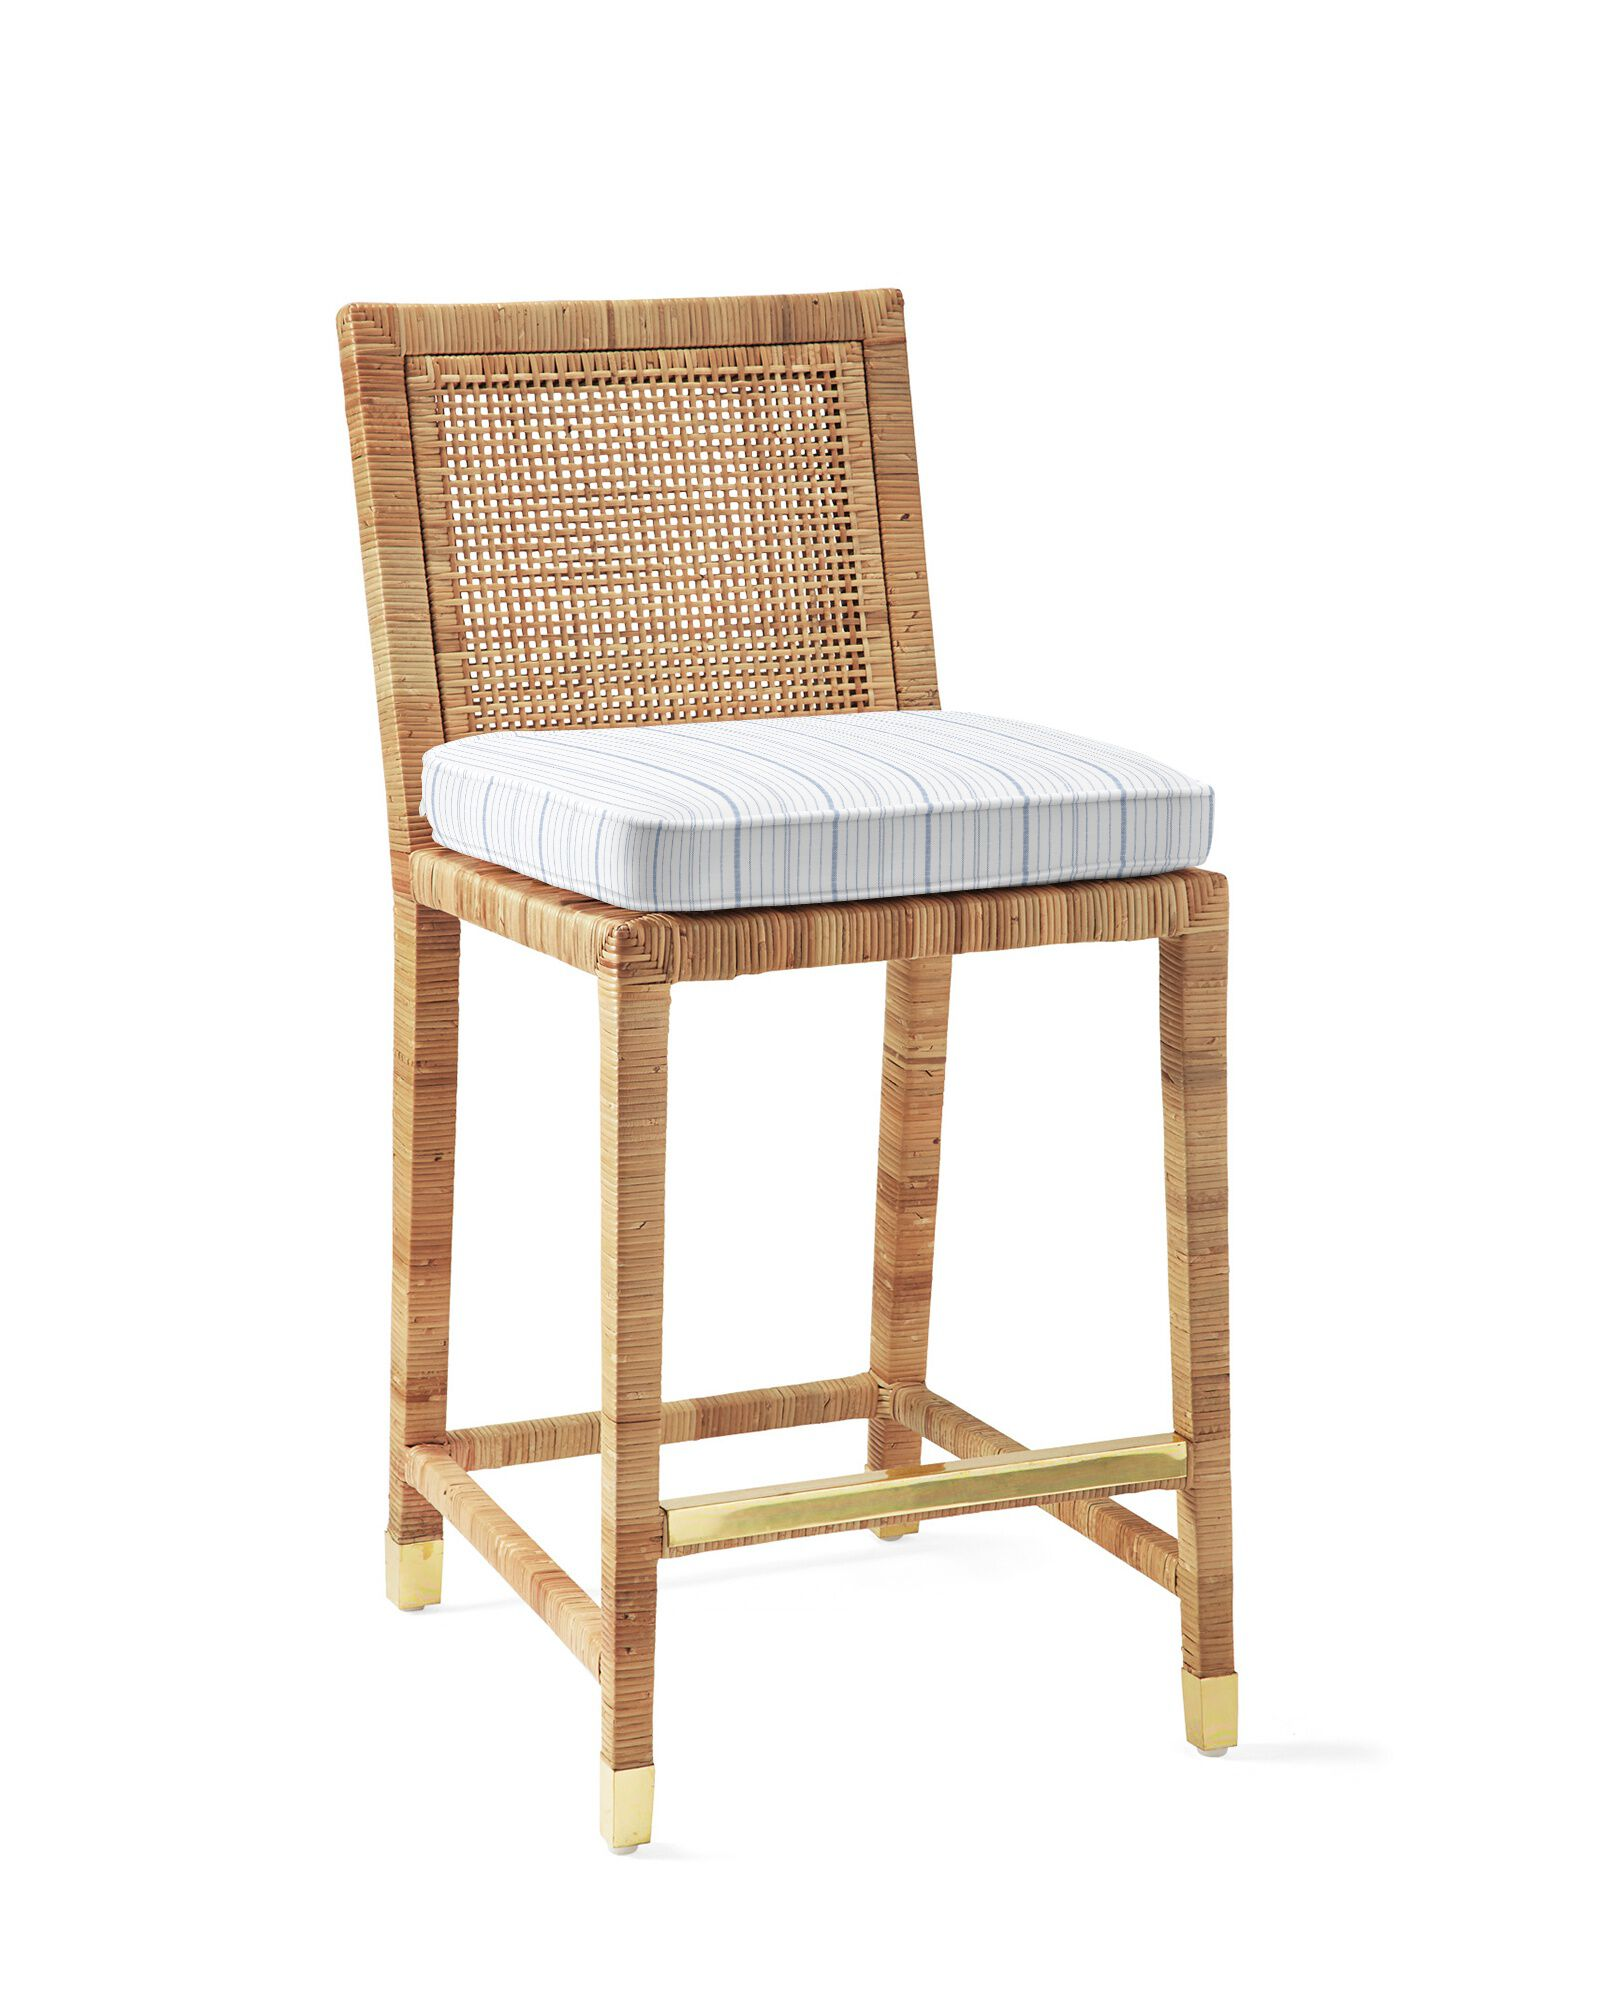 Cushion Cover for Balboa Counter Stool - Natural, Surf Stripe Navy